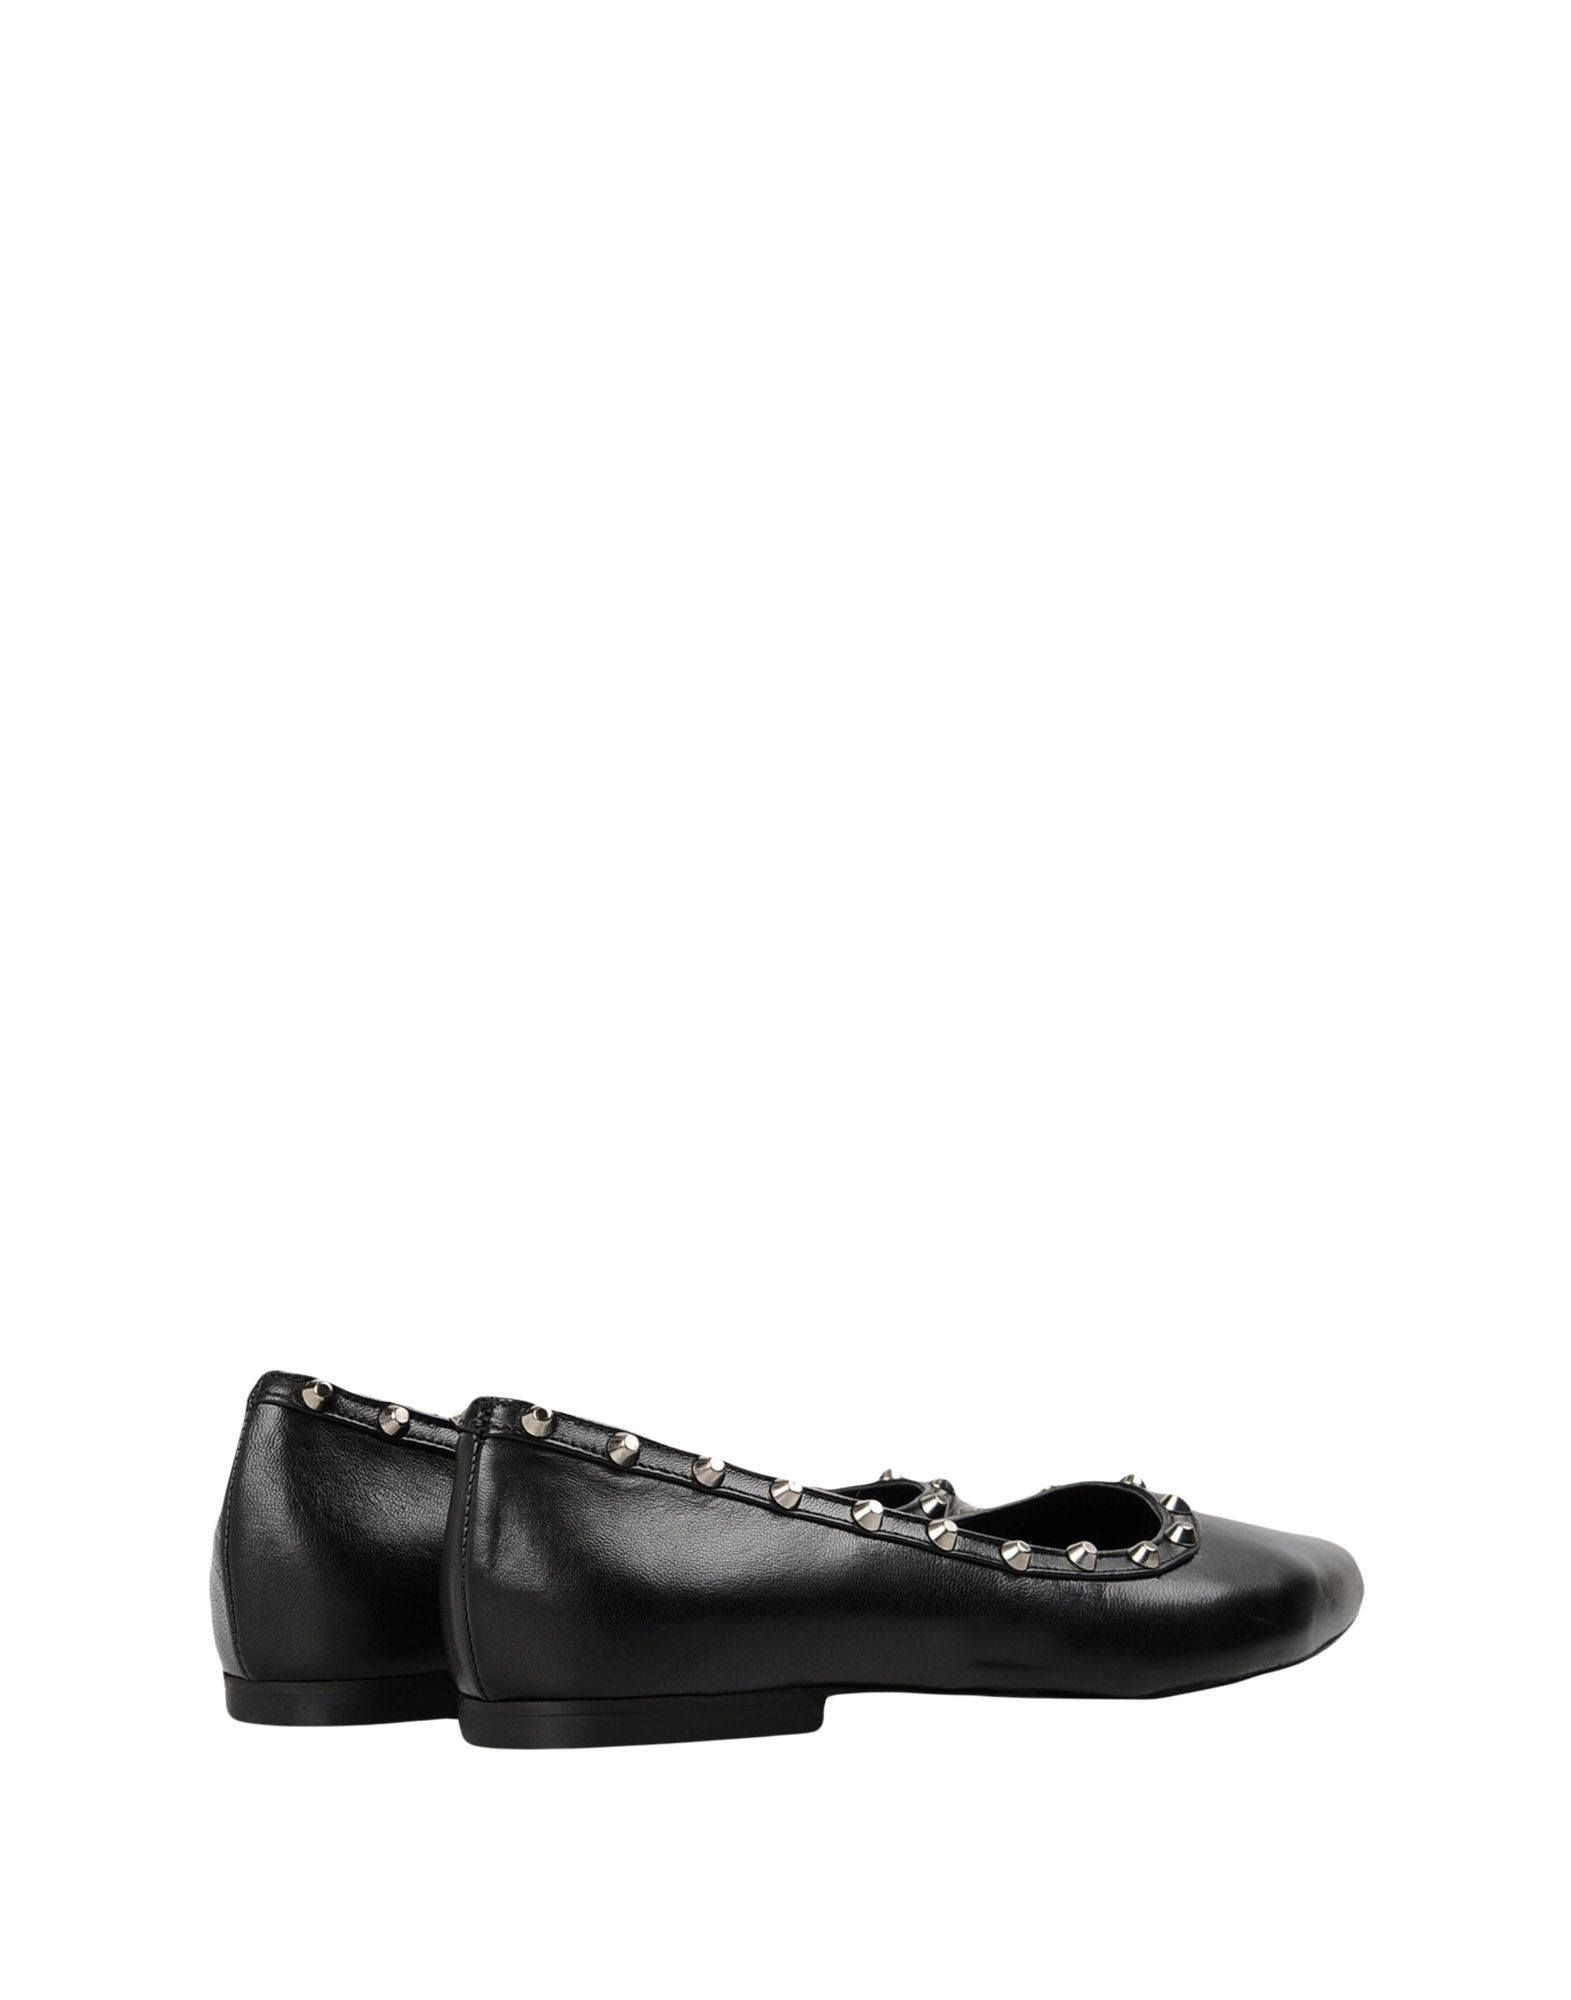 Ballerine Jolie By By By Edward Spiers Donna - 11423749LF 0e3021